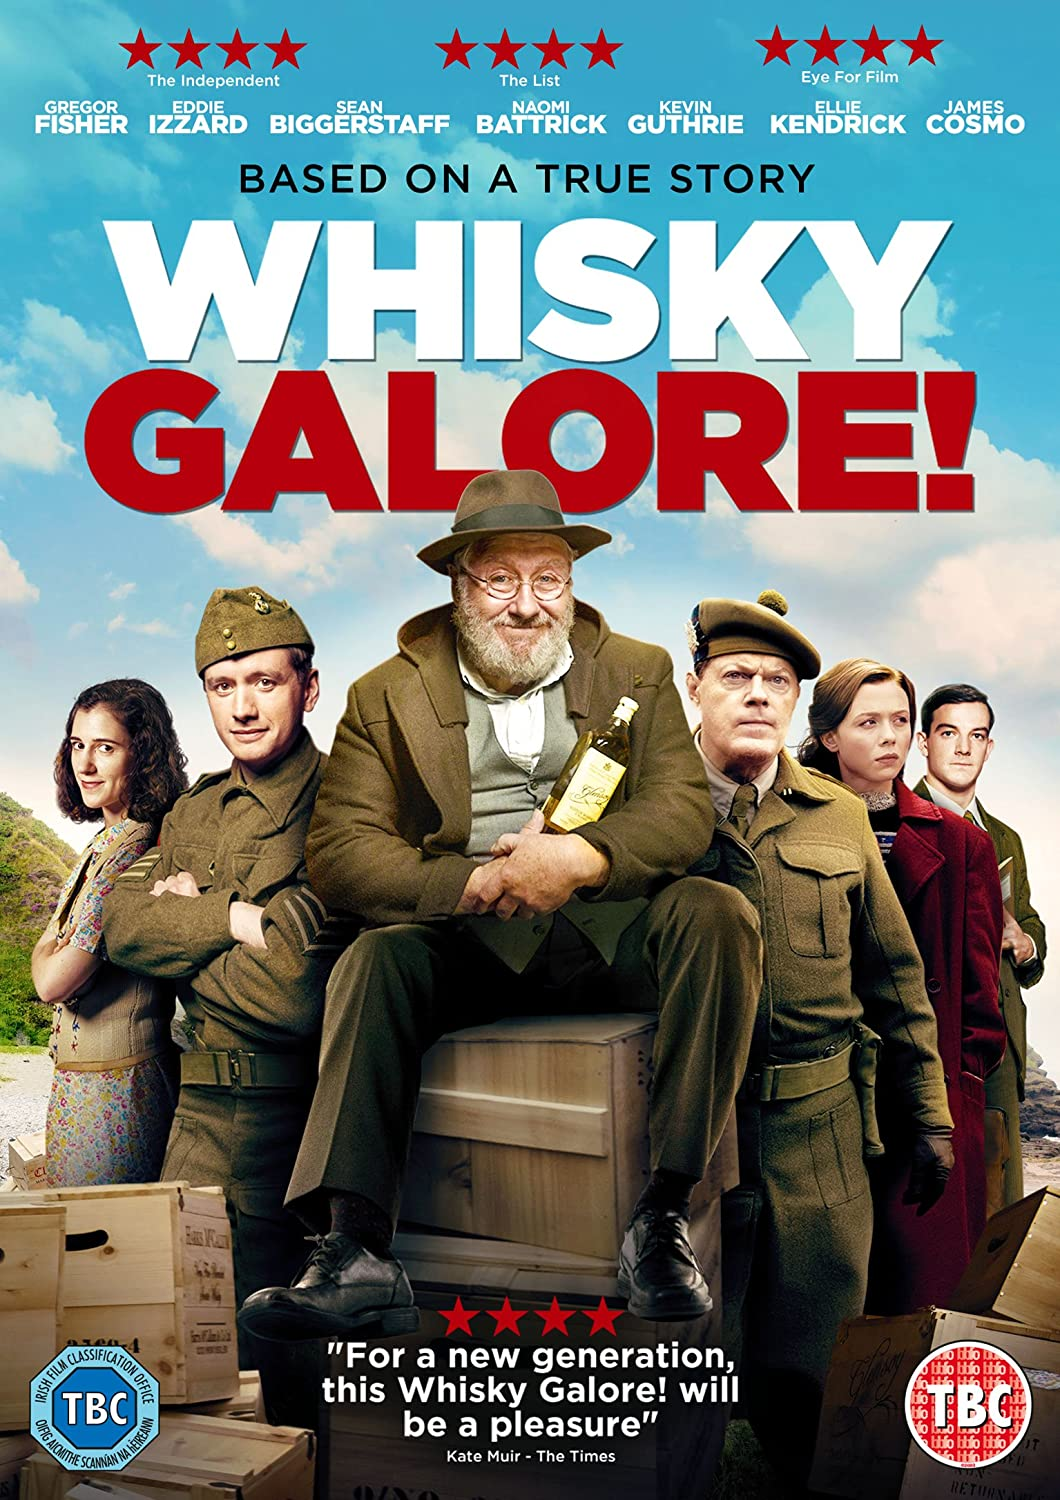 Whiskey Galore PG, Amy Robsart Hall, Syderstone PE31 8SD | A great comedy film for all the family; a remake of the classic film. | film, children